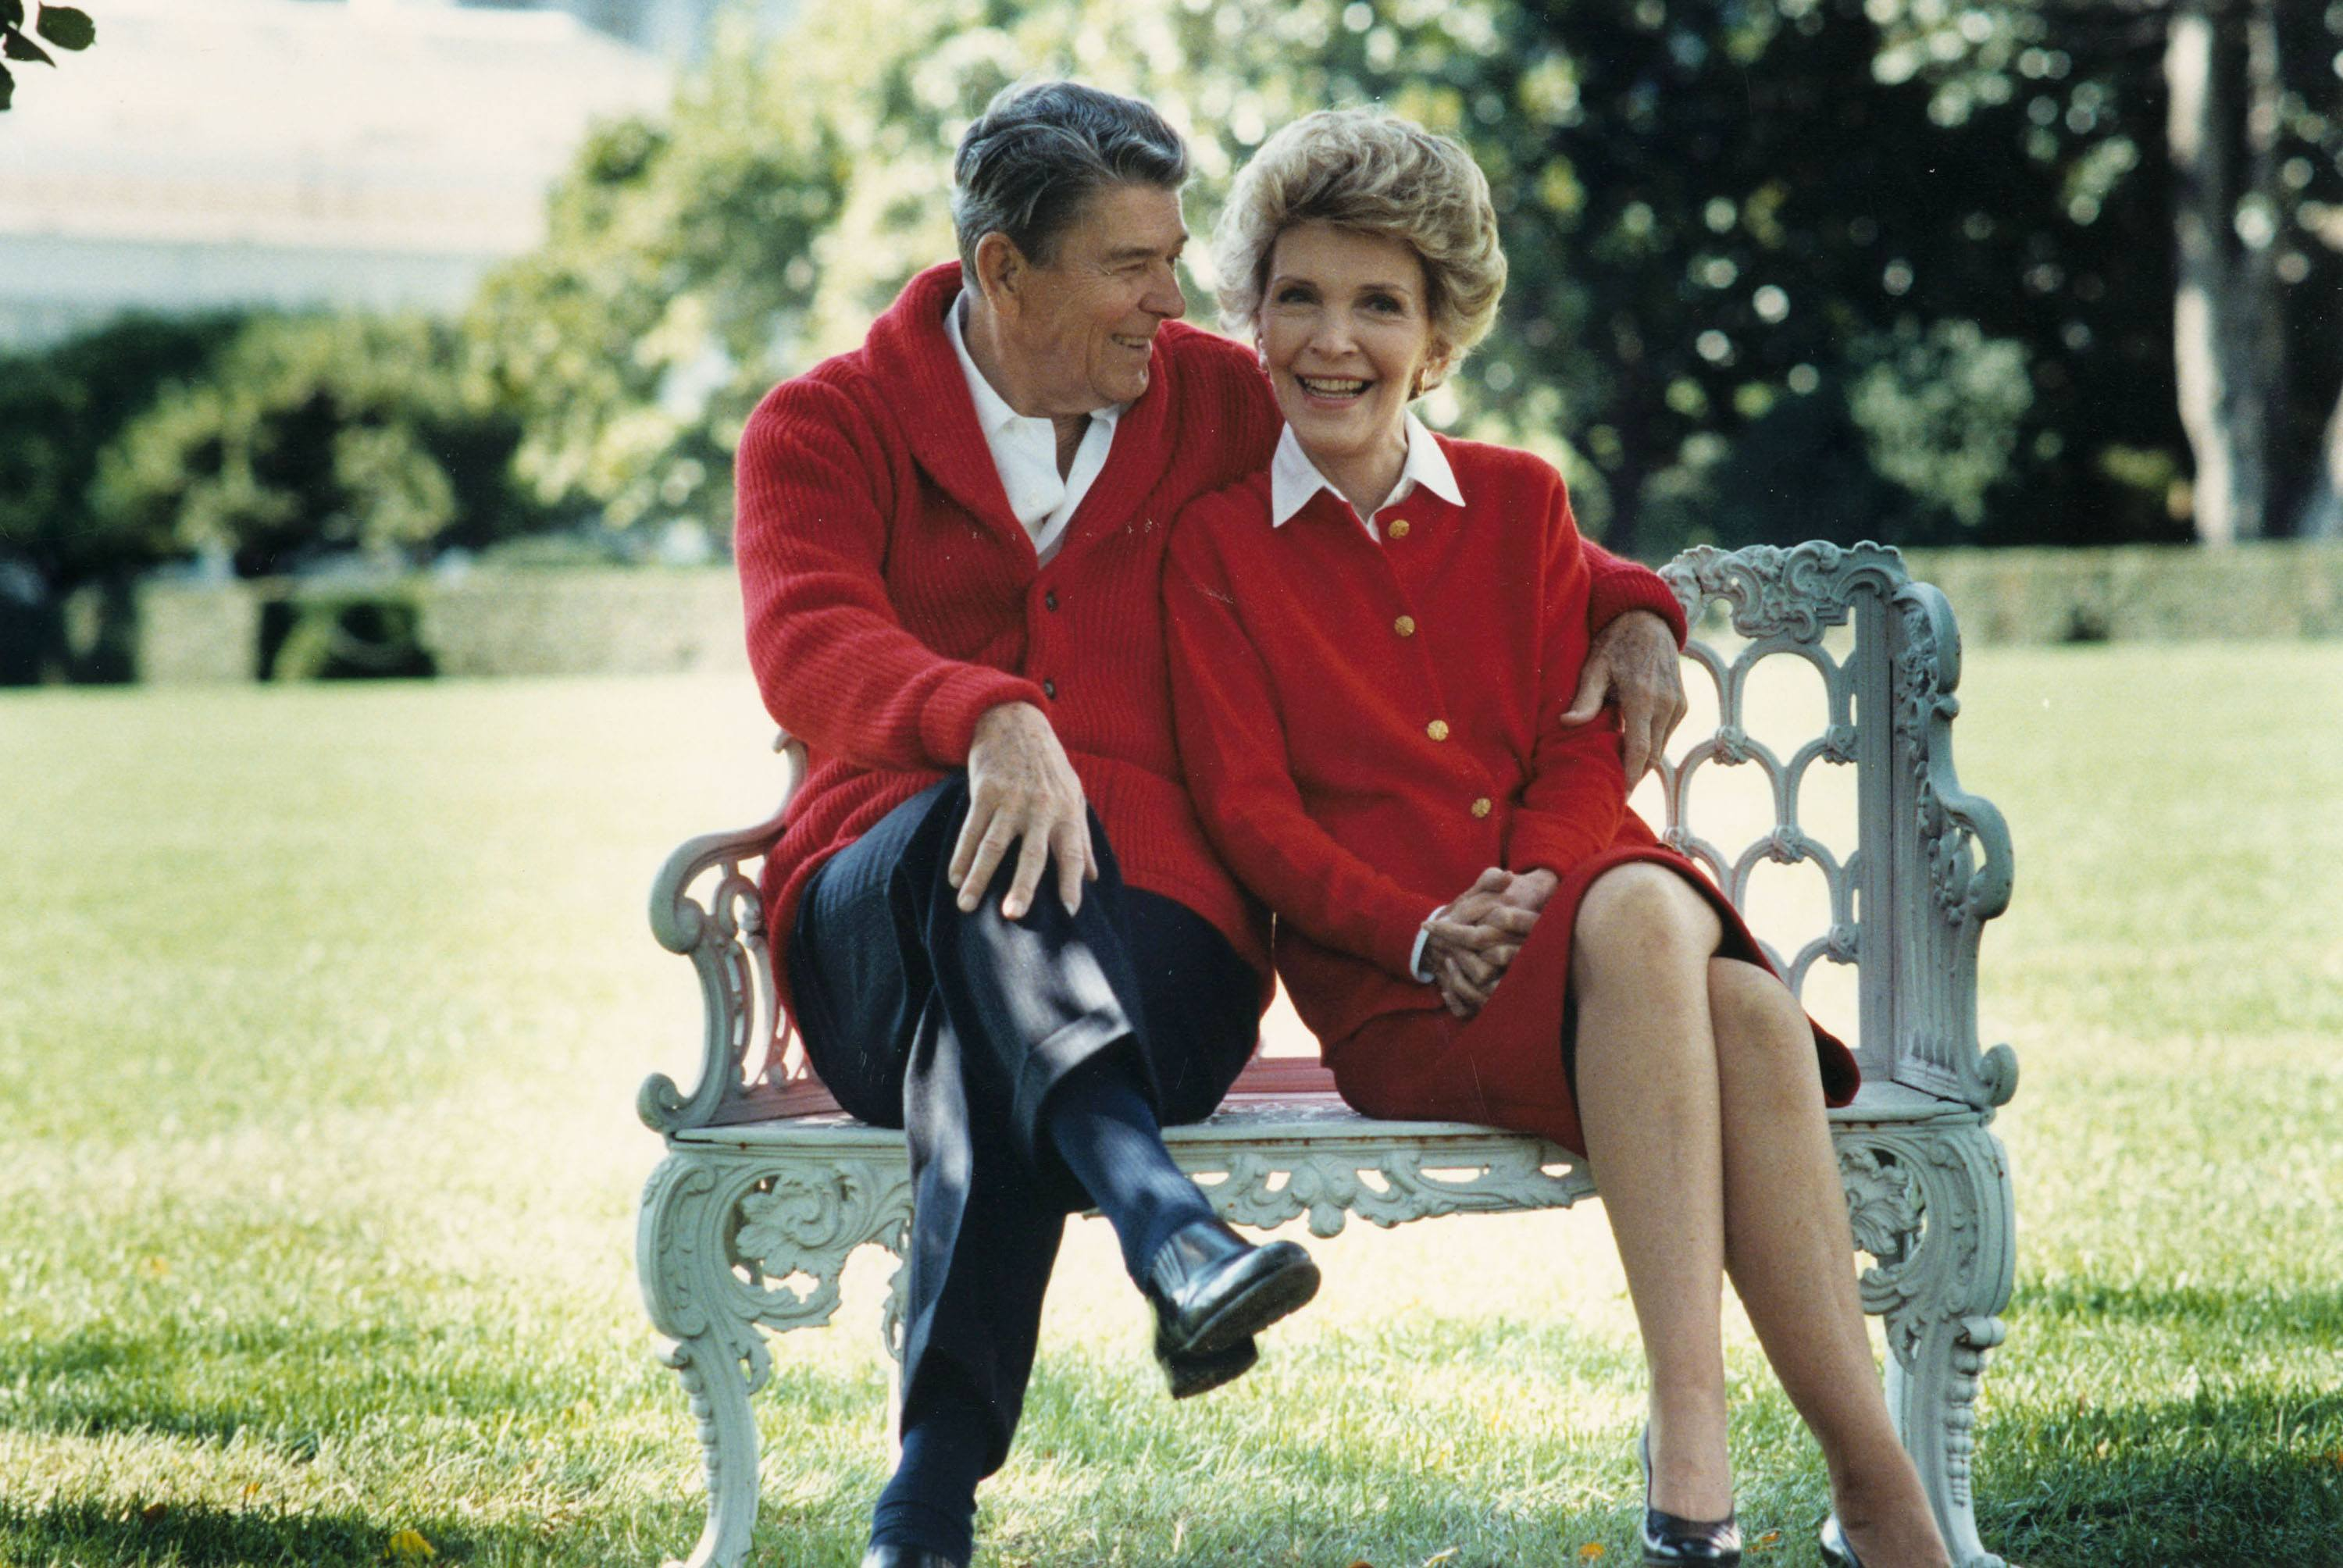 Former U.S. President Ronald Reagan and First Lady Nancy Reagan